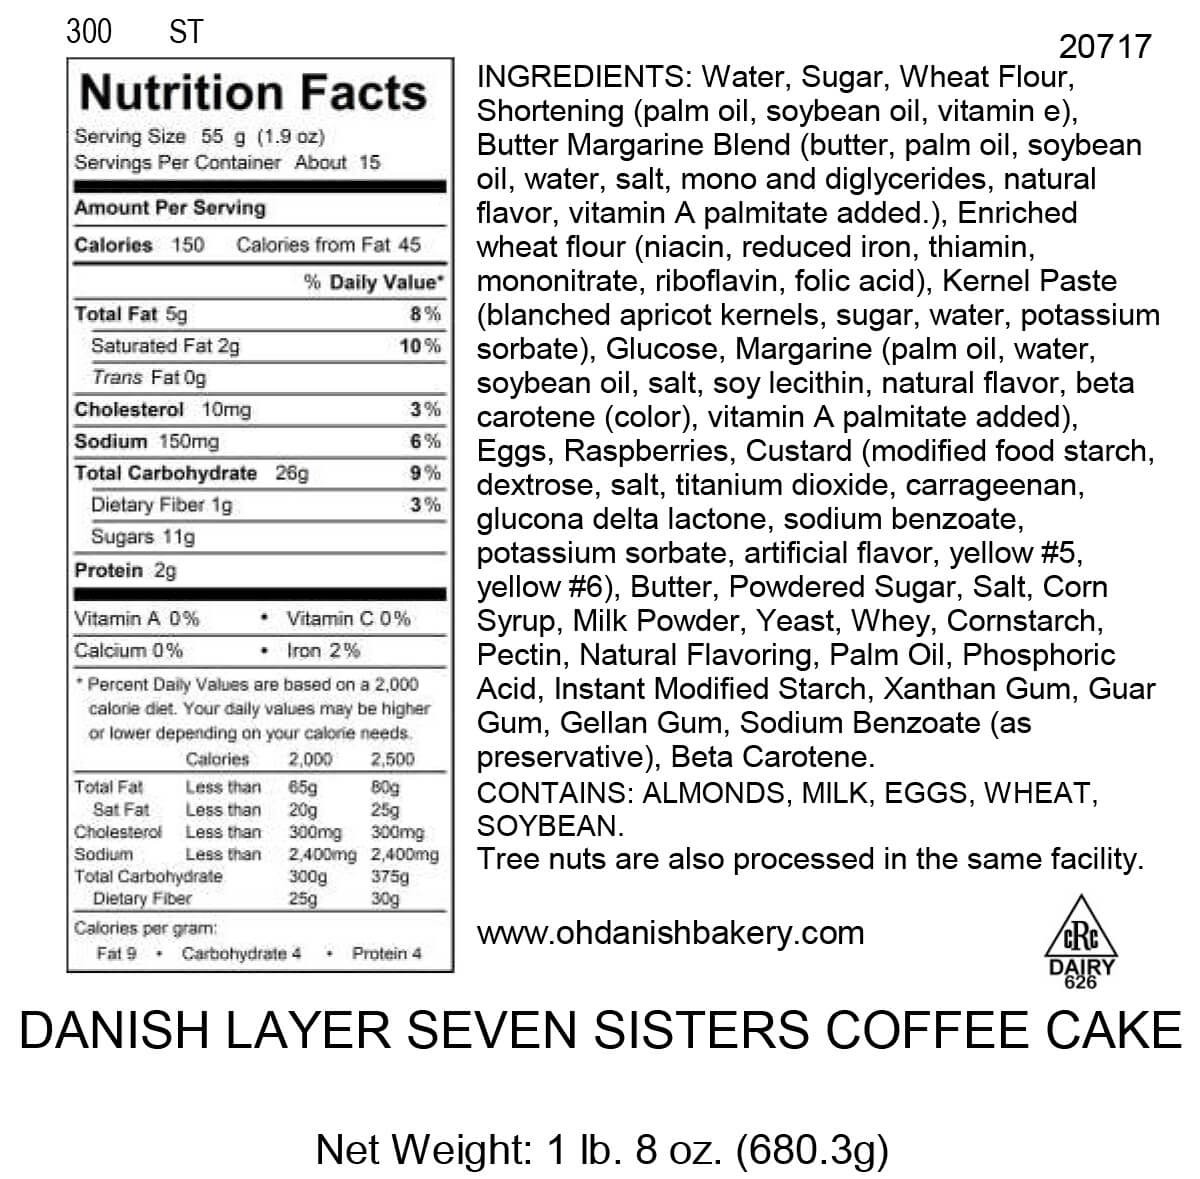 Nutritional Label for Danish Layer Seven Sisters Coffee Cake